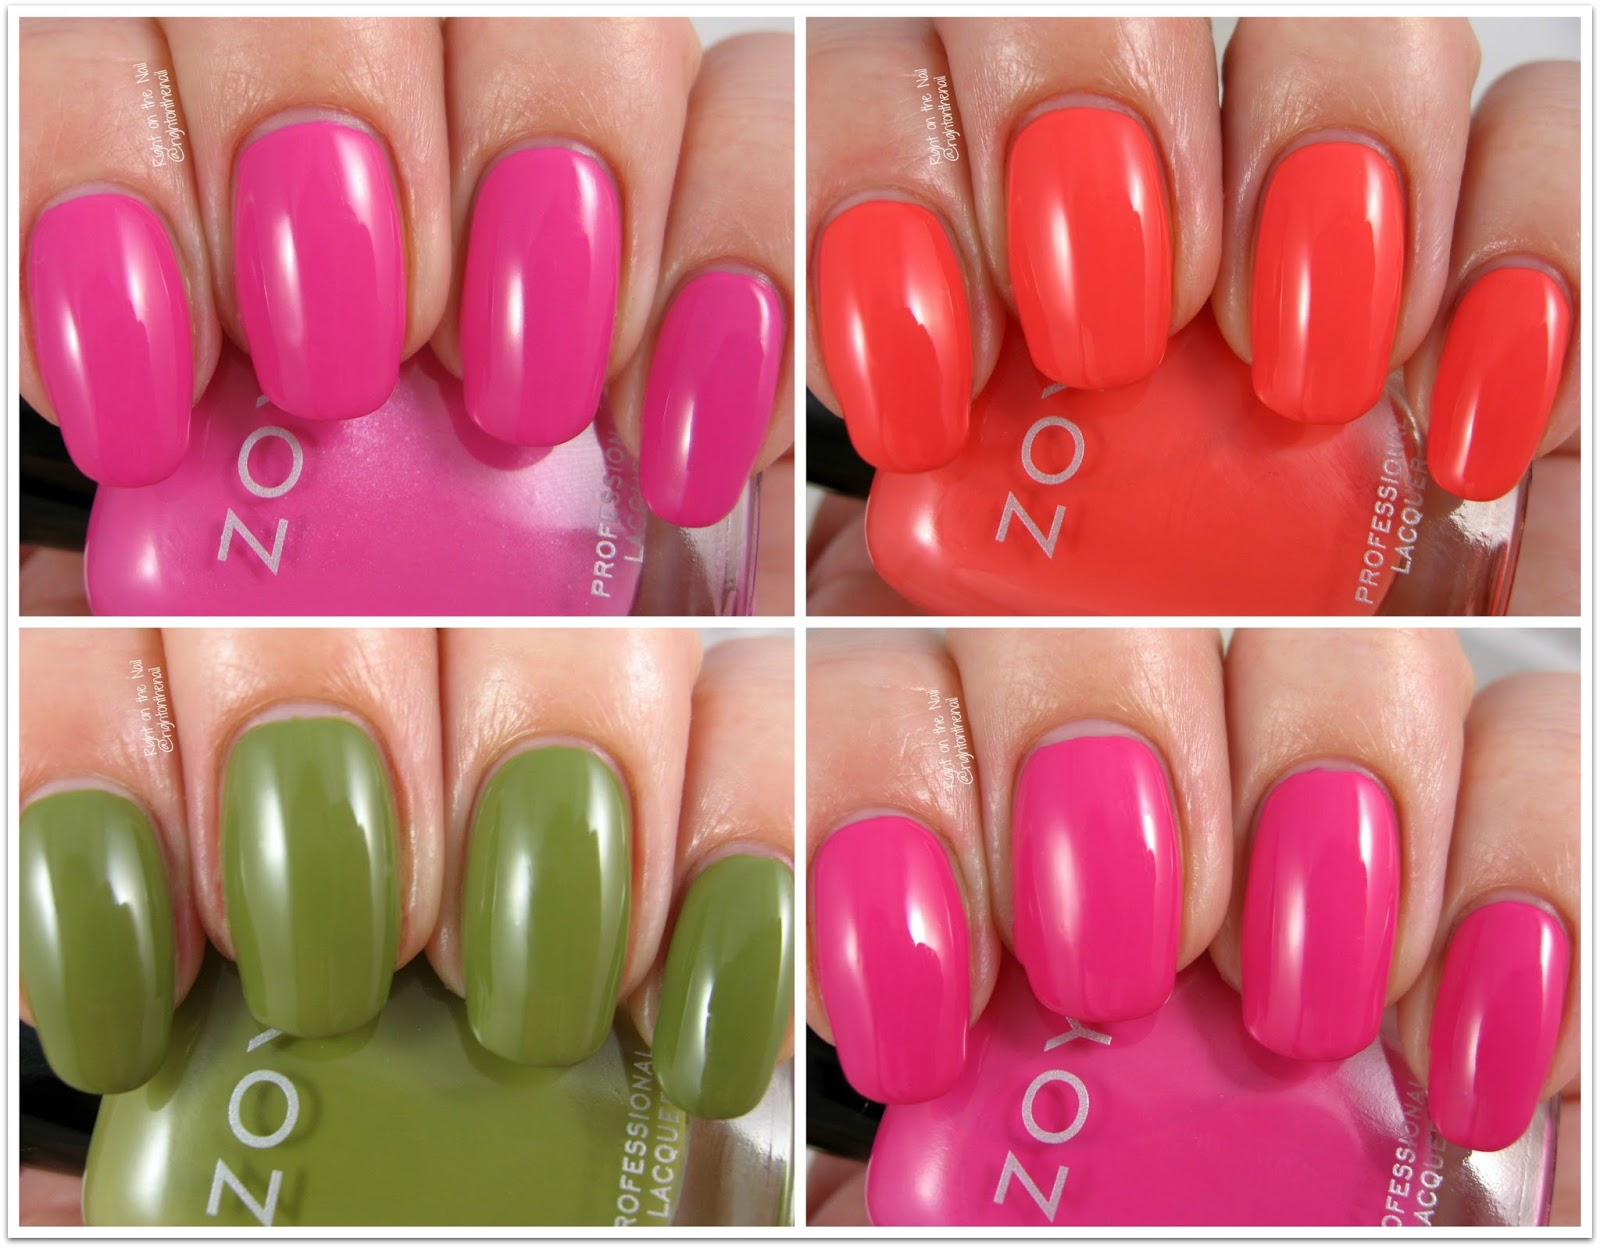 Zoya Nail Polish Msds - To Bend Light